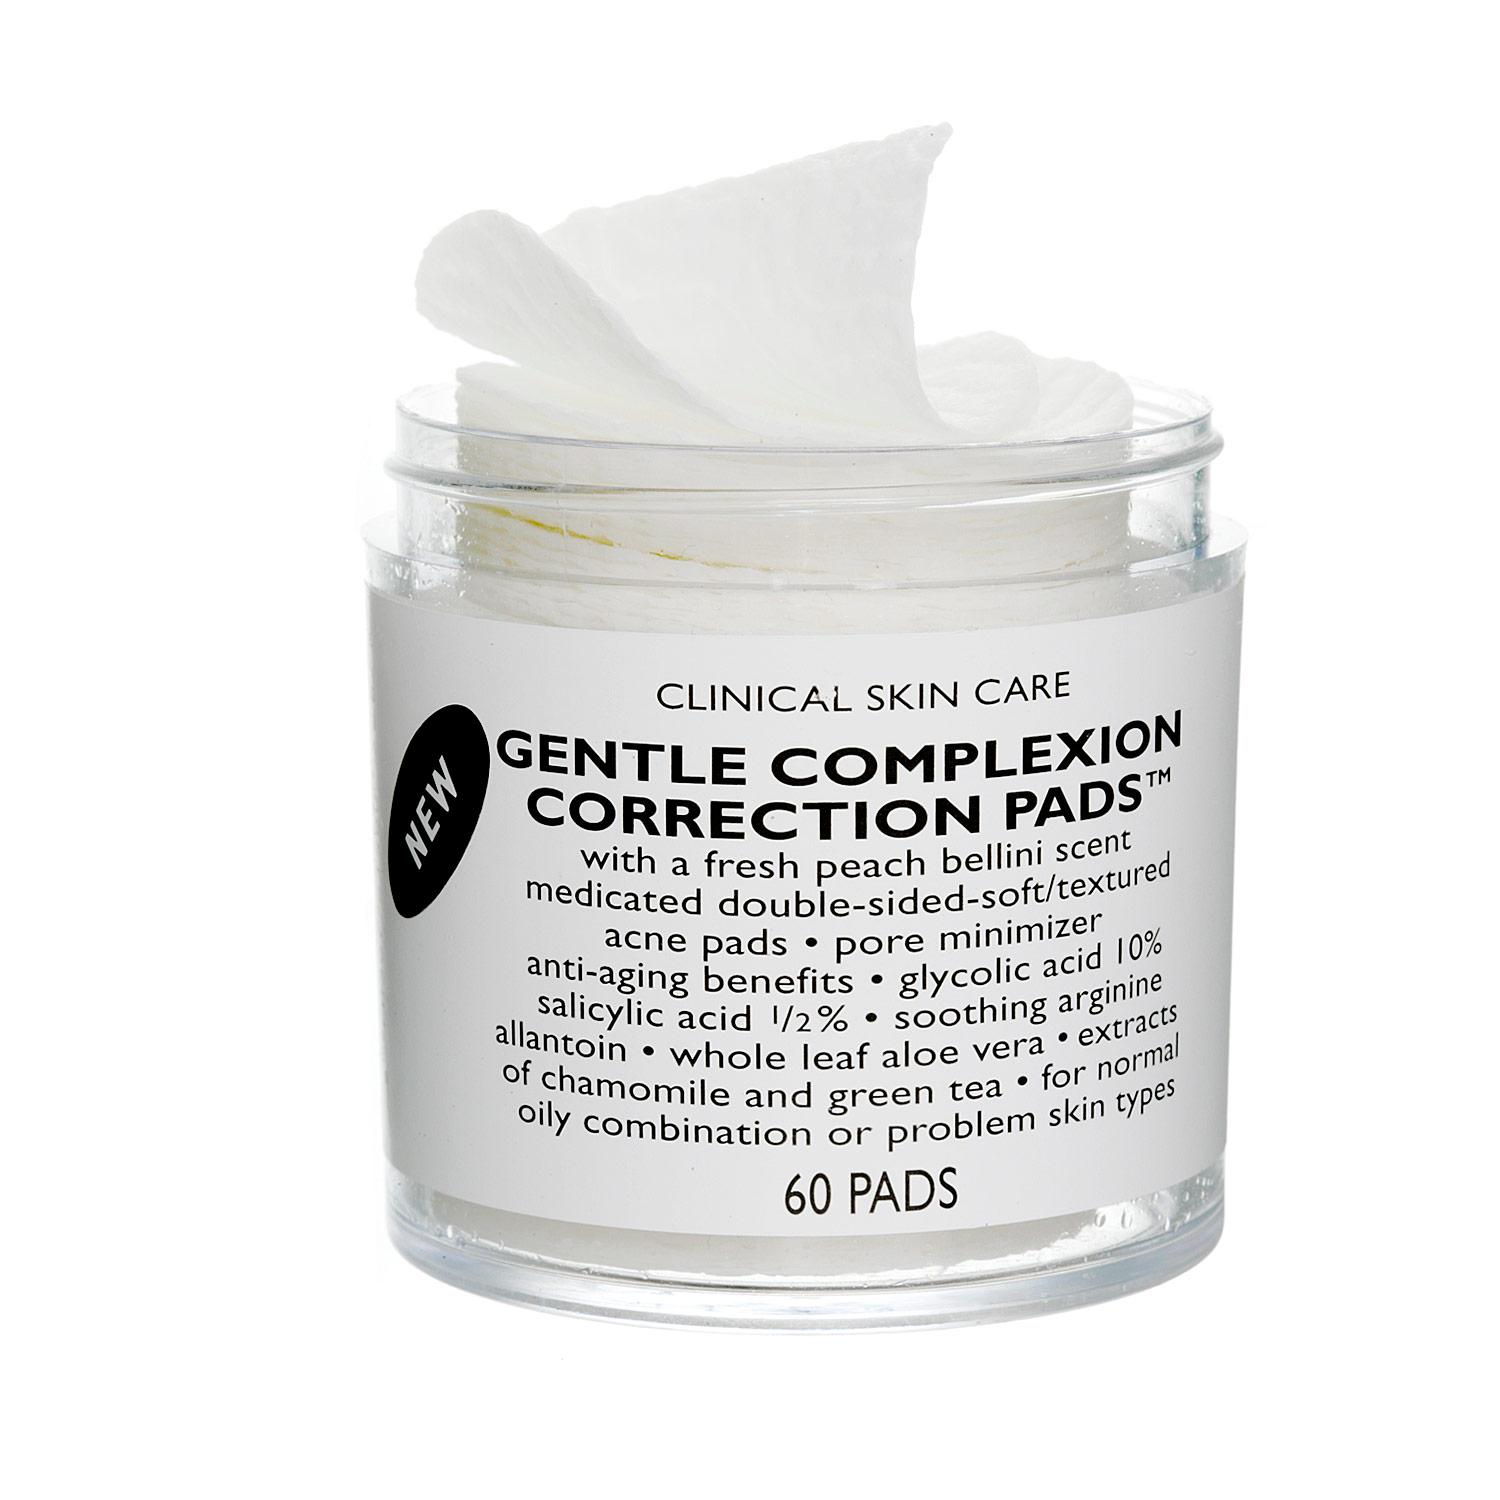 Gentle Complexion Correction Pads